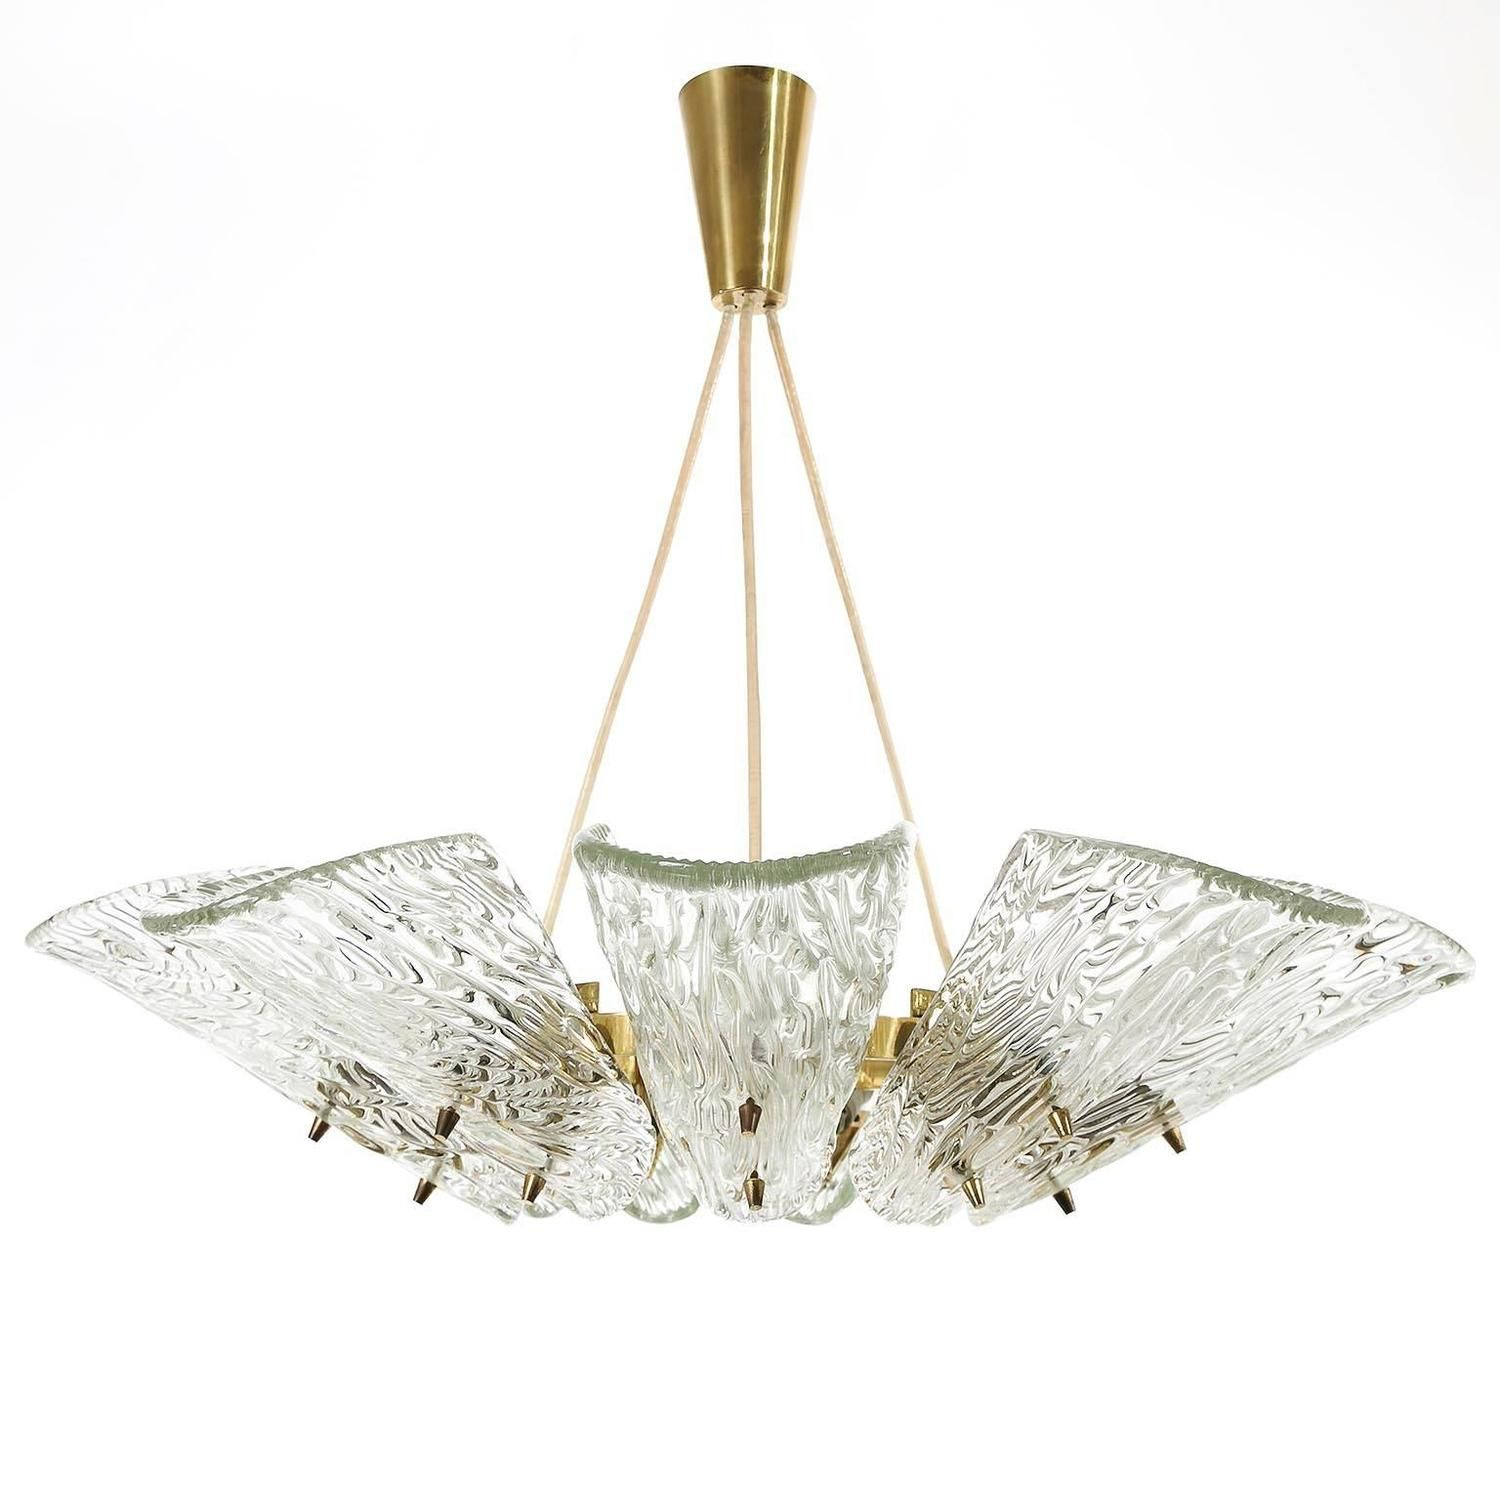 Two Large Kalmar Pendant Lights Or Chandeliers Brass And Glass